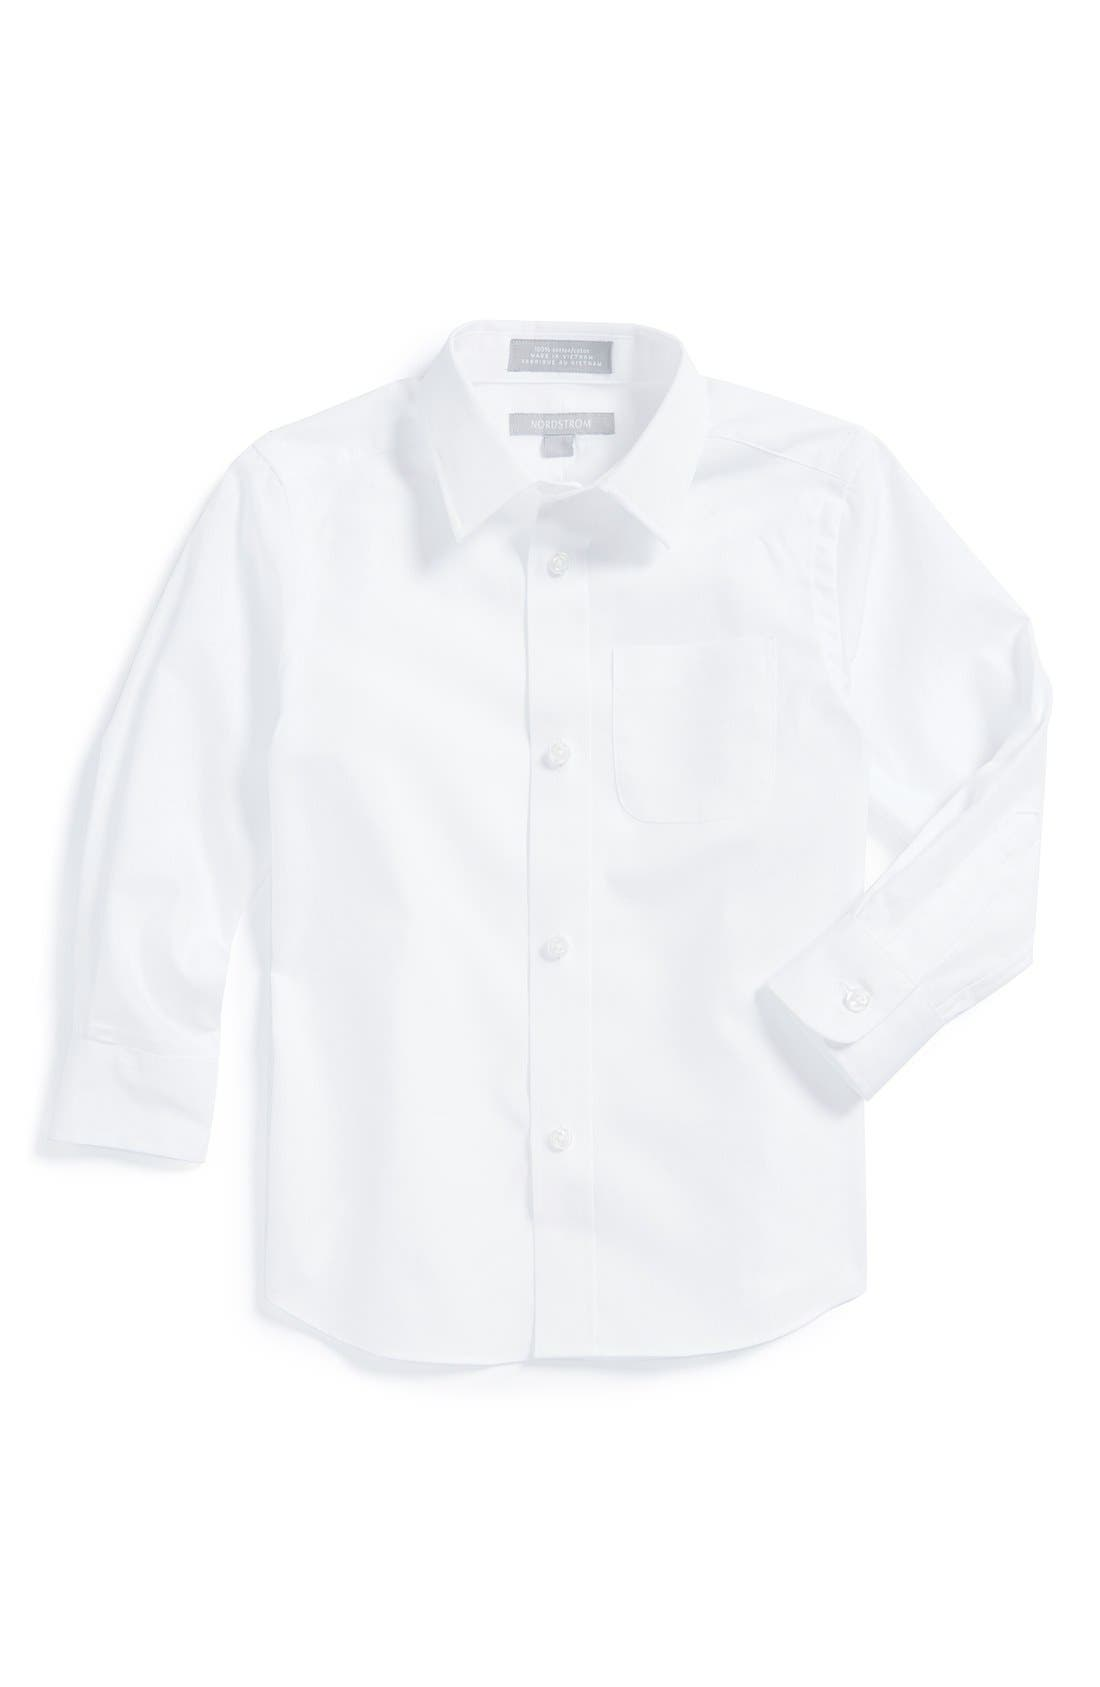 Nordstrom Cotton Poplin Dress Shirt (Toddler Boys)